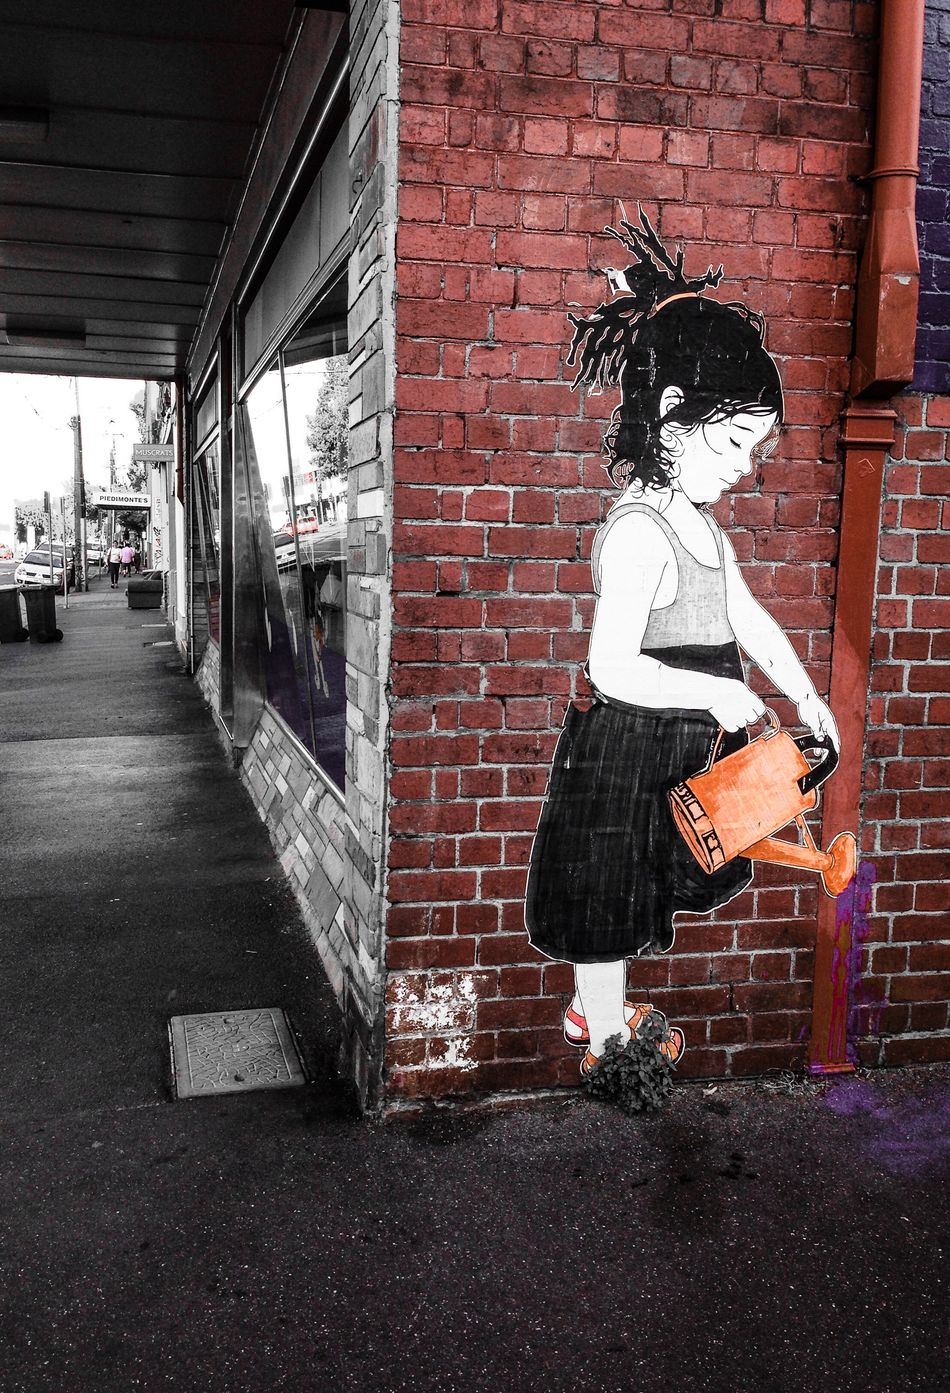 Photographic Approximation... Streetart/graffiti pasteup by BeFree...